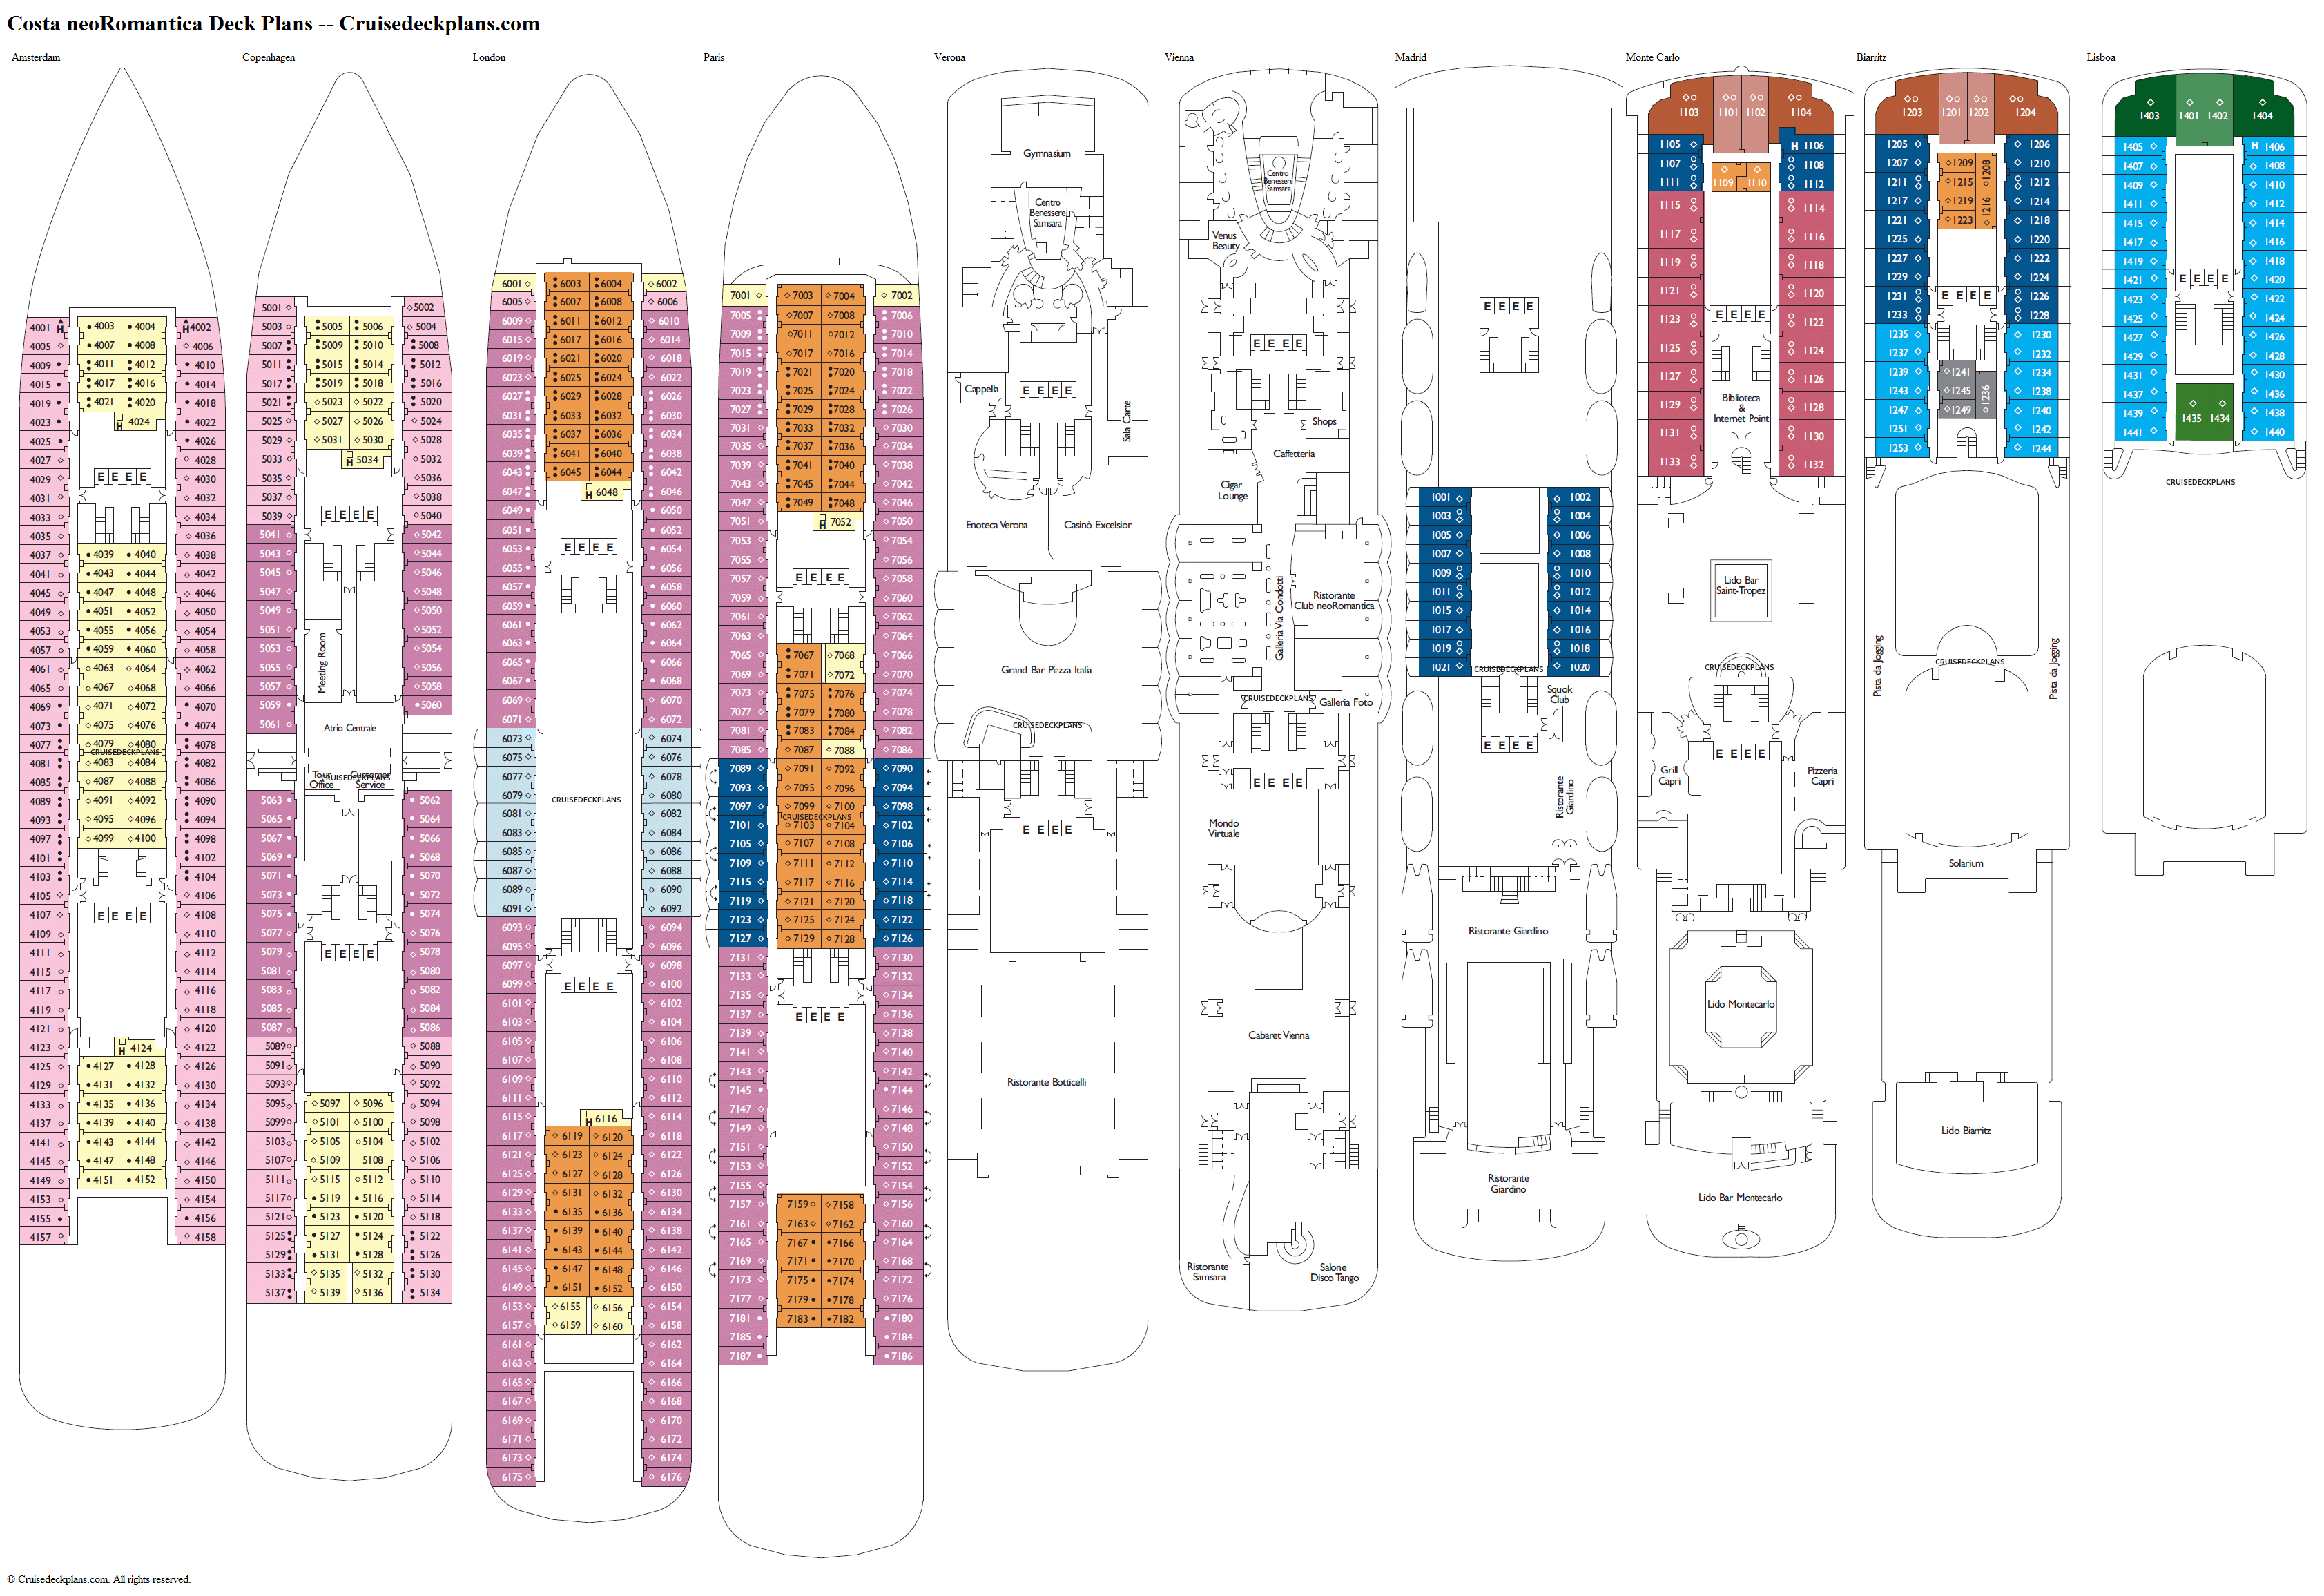 Costa neoRomantica deck plans image